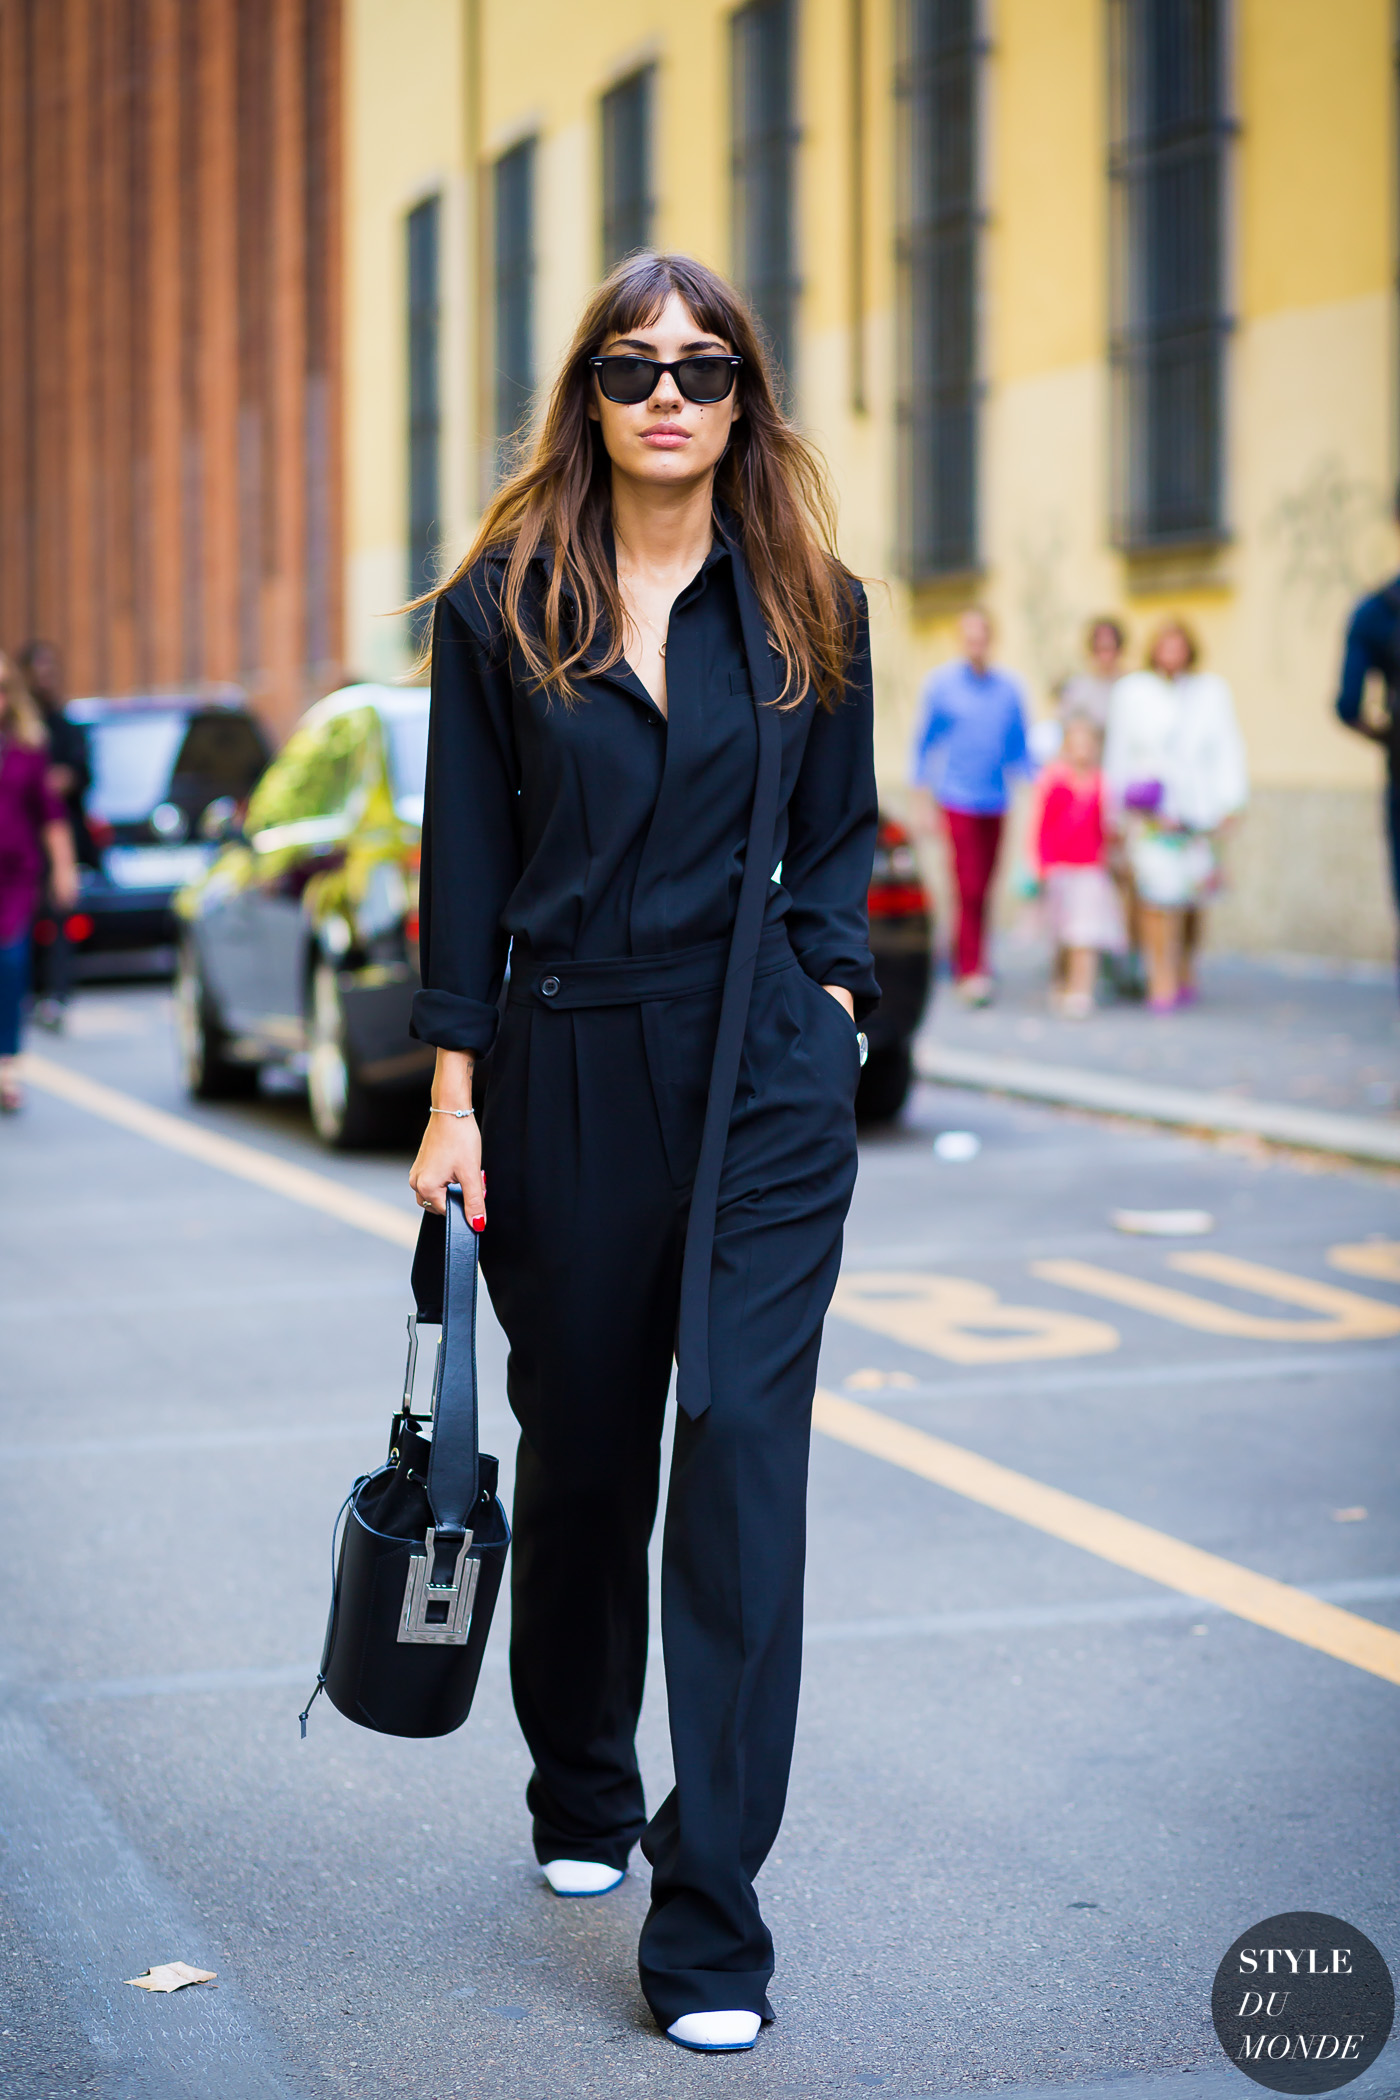 Patricia Manfield Street Style Street Fashion Streetsnaps by STYLEDUMONDE Street Style Fashion Photography